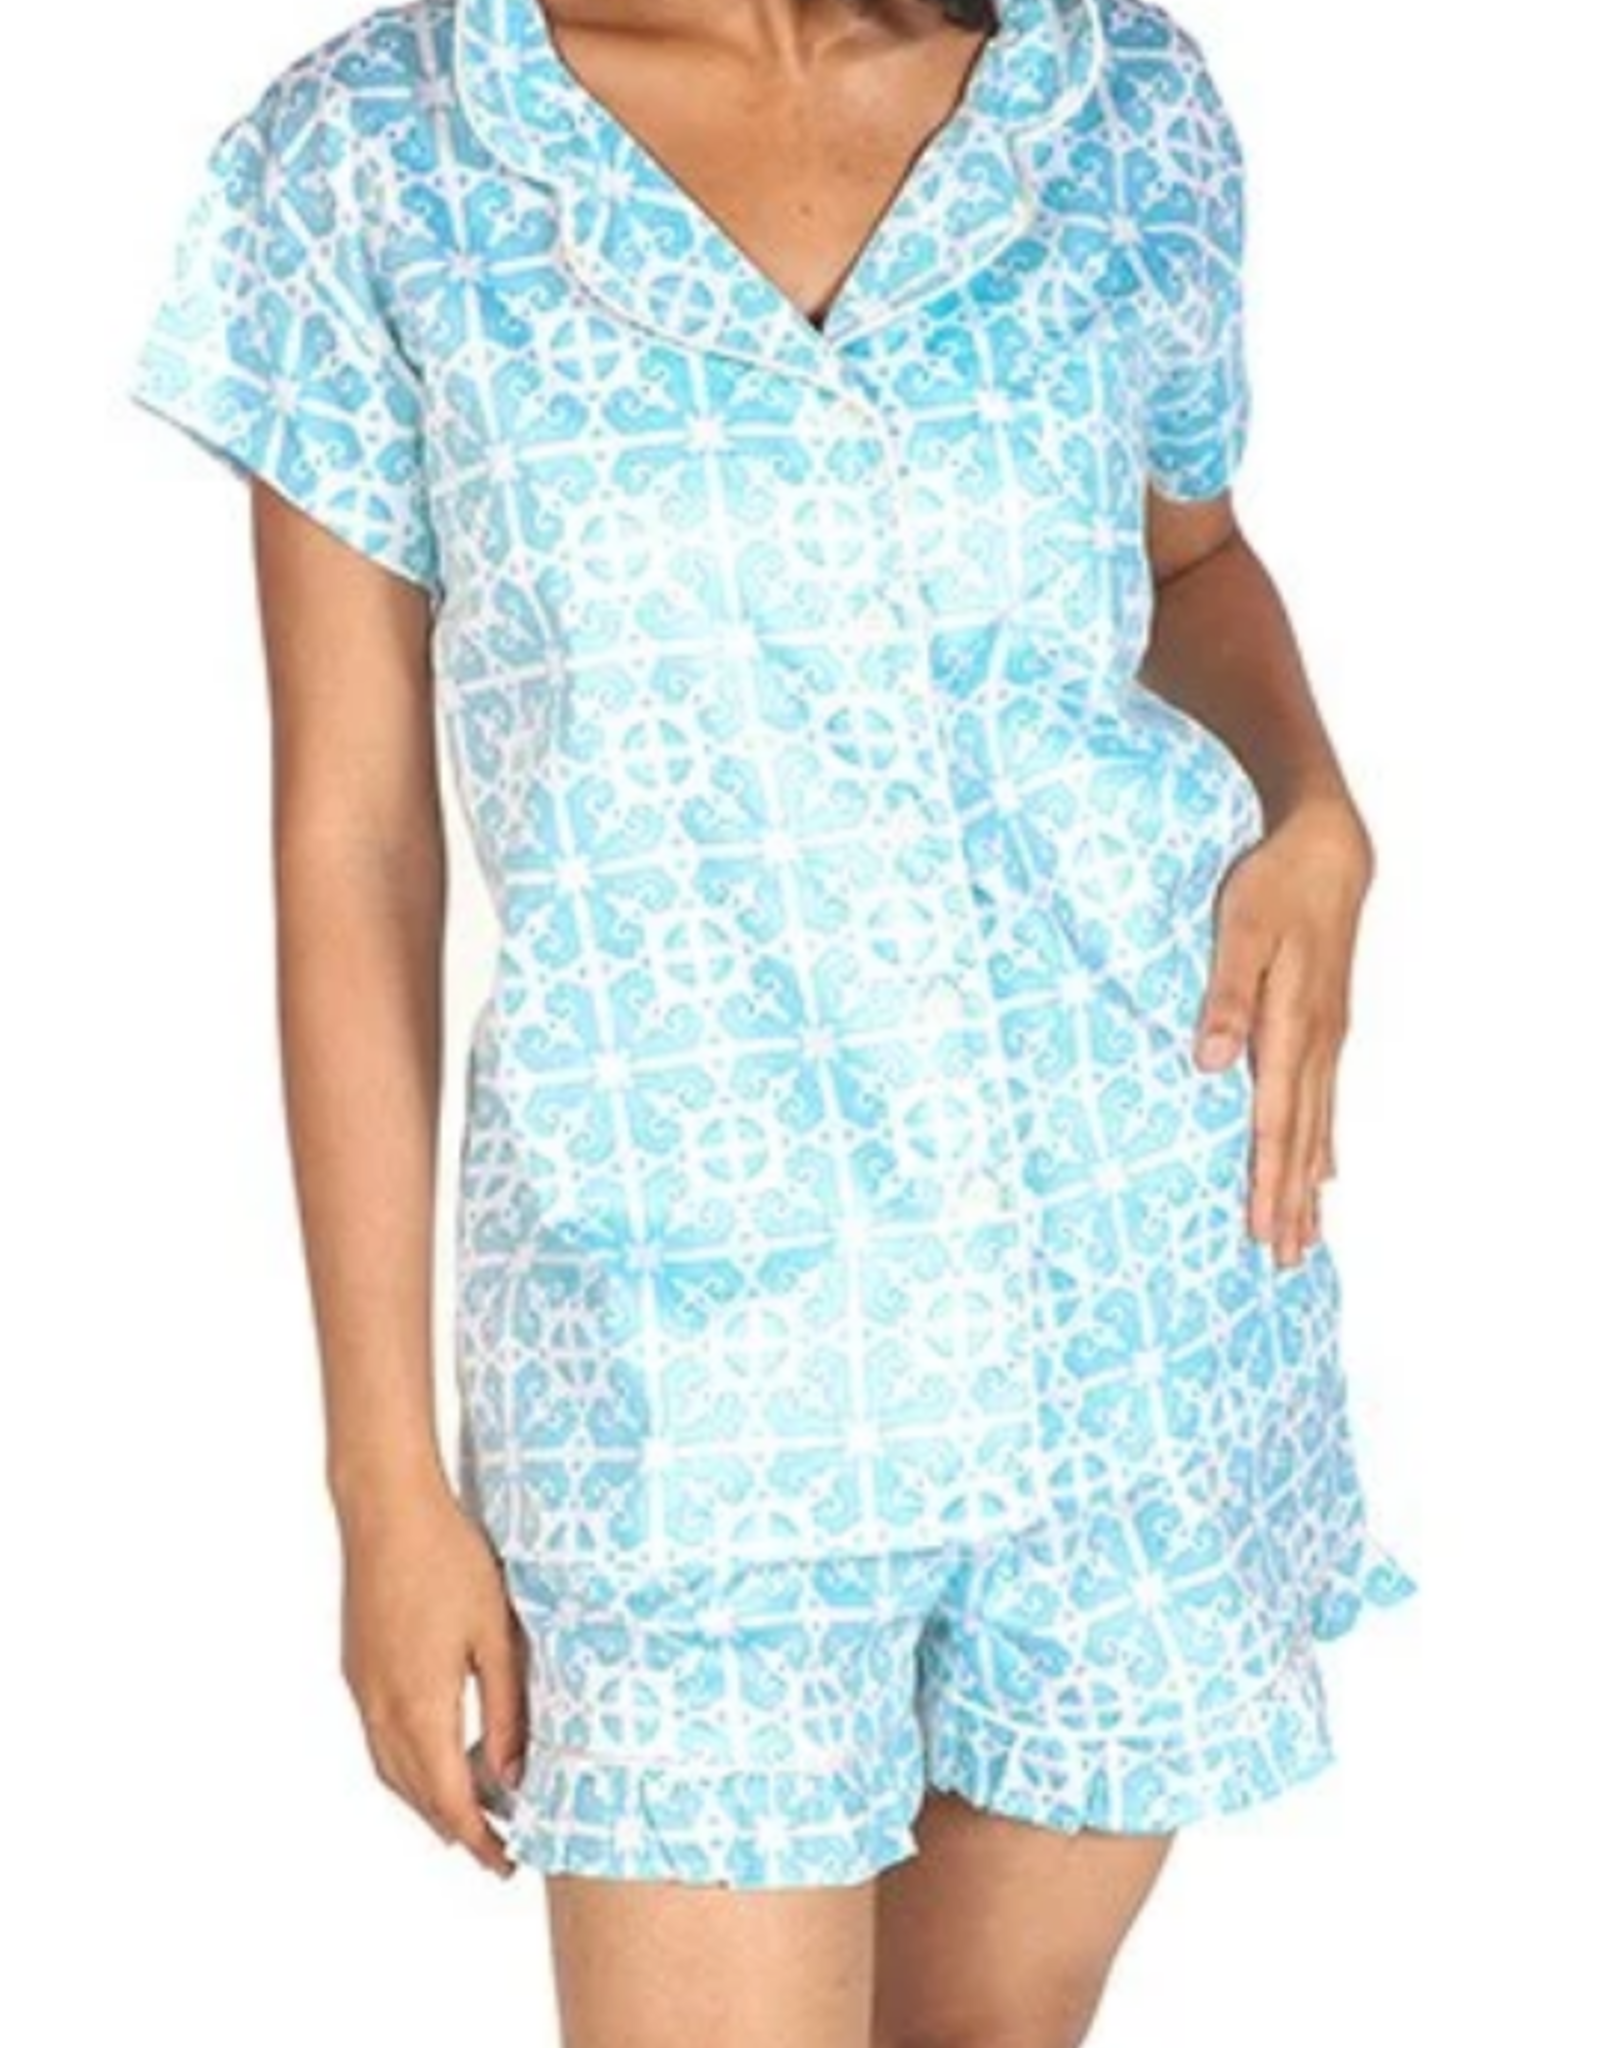 Jaye's Studio Garden Gate Ruffled Summer Pajama Set